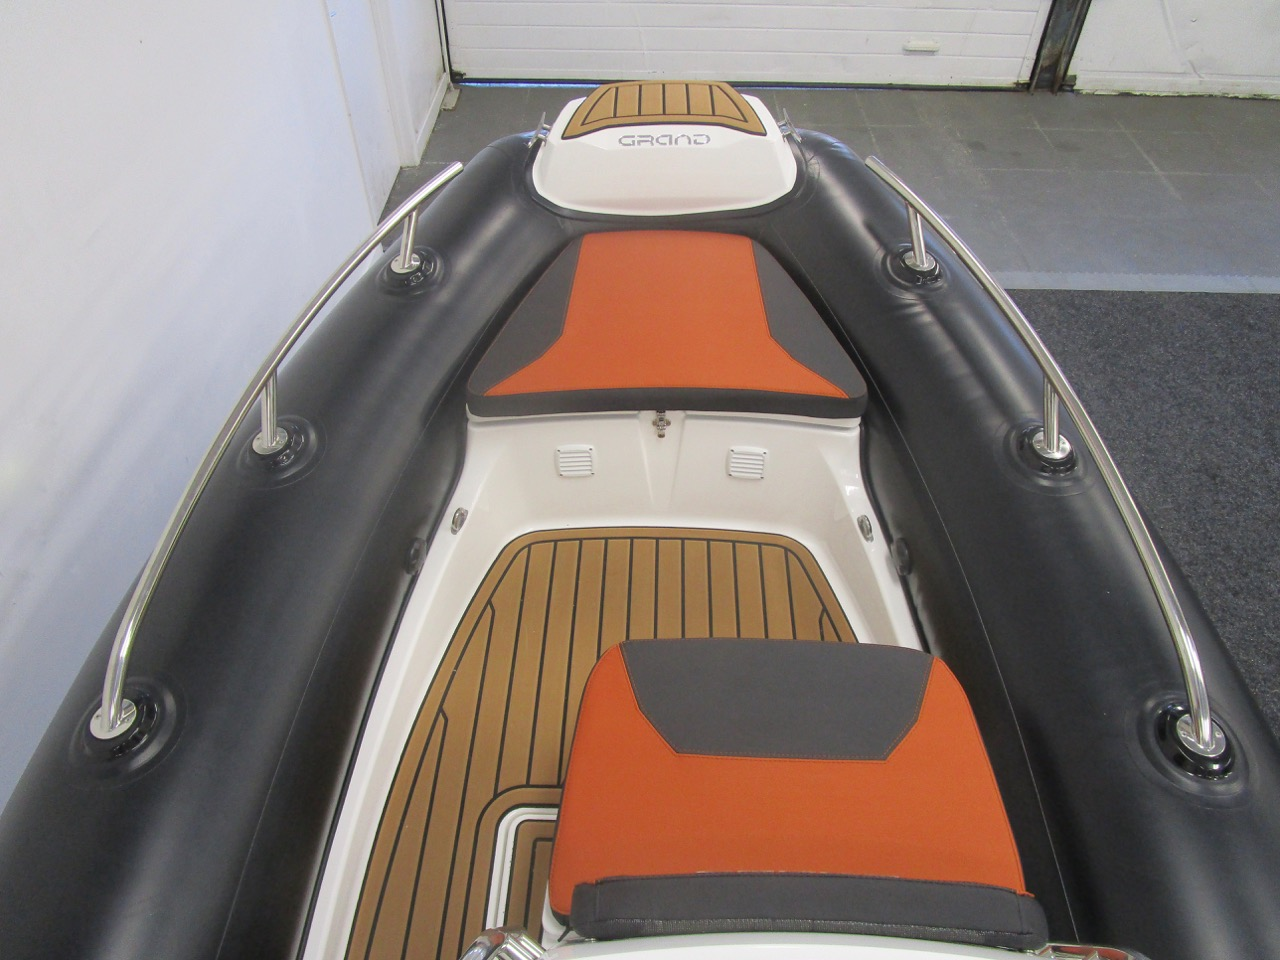 GRAND Golden Line G420 RIB bow